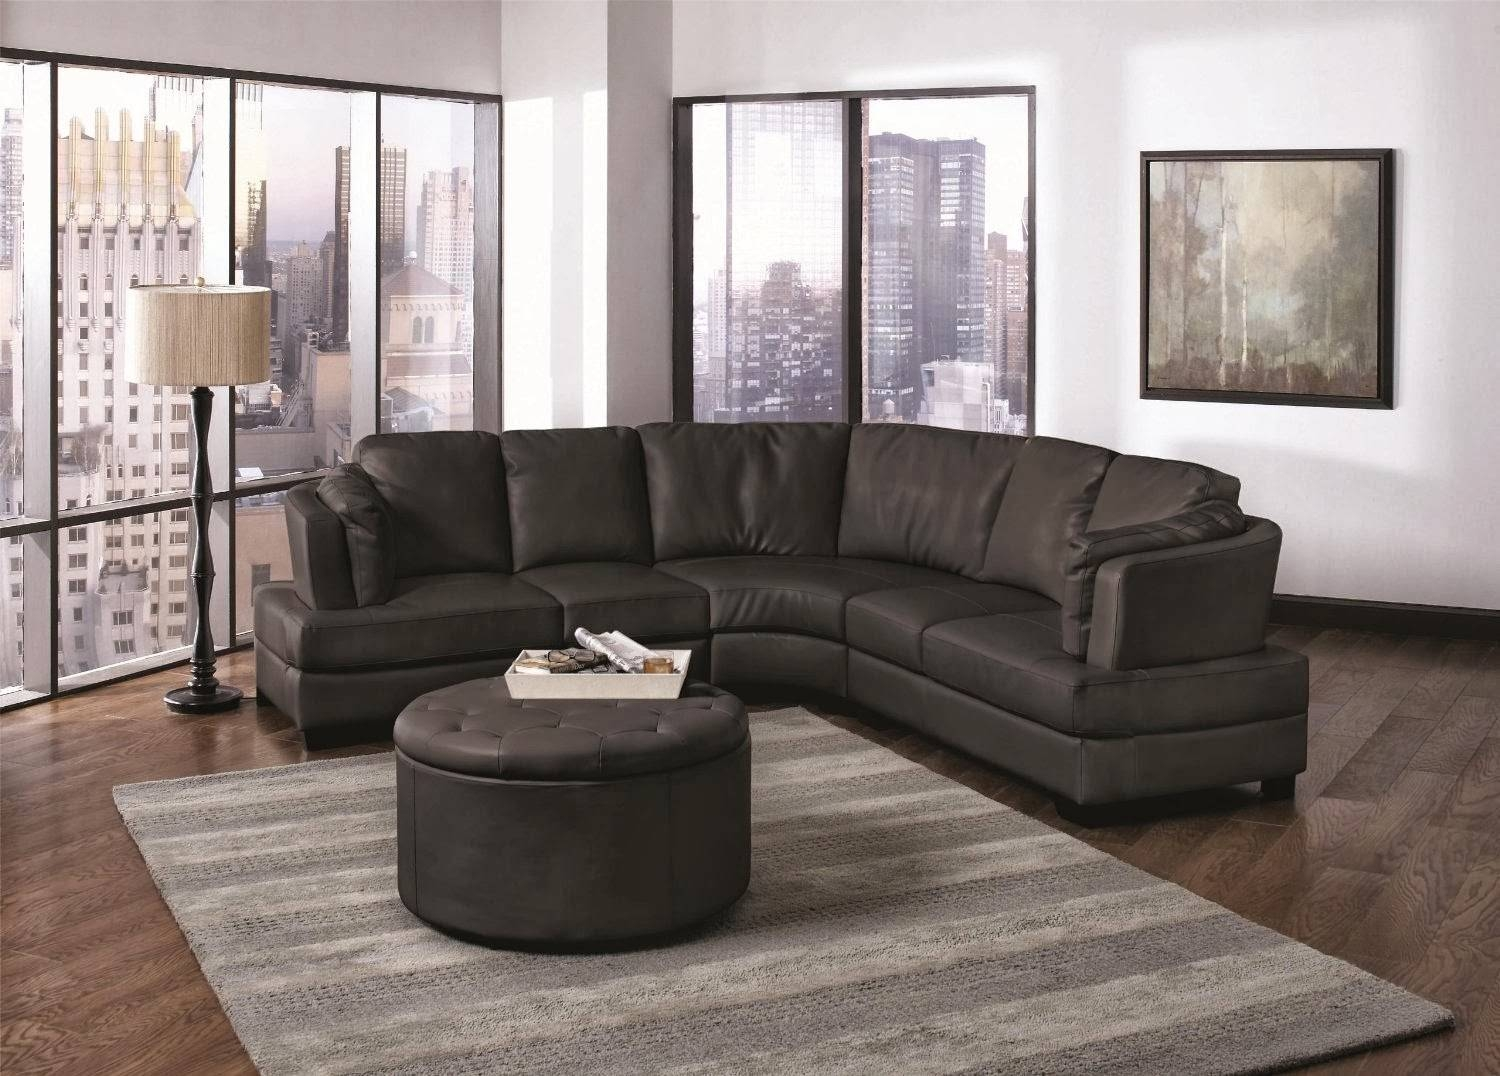 Furniture: Alluring Unique Curved Couches With Classic Design Home pertaining to Semi Round Sectional Sofas (Image 4 of 15)